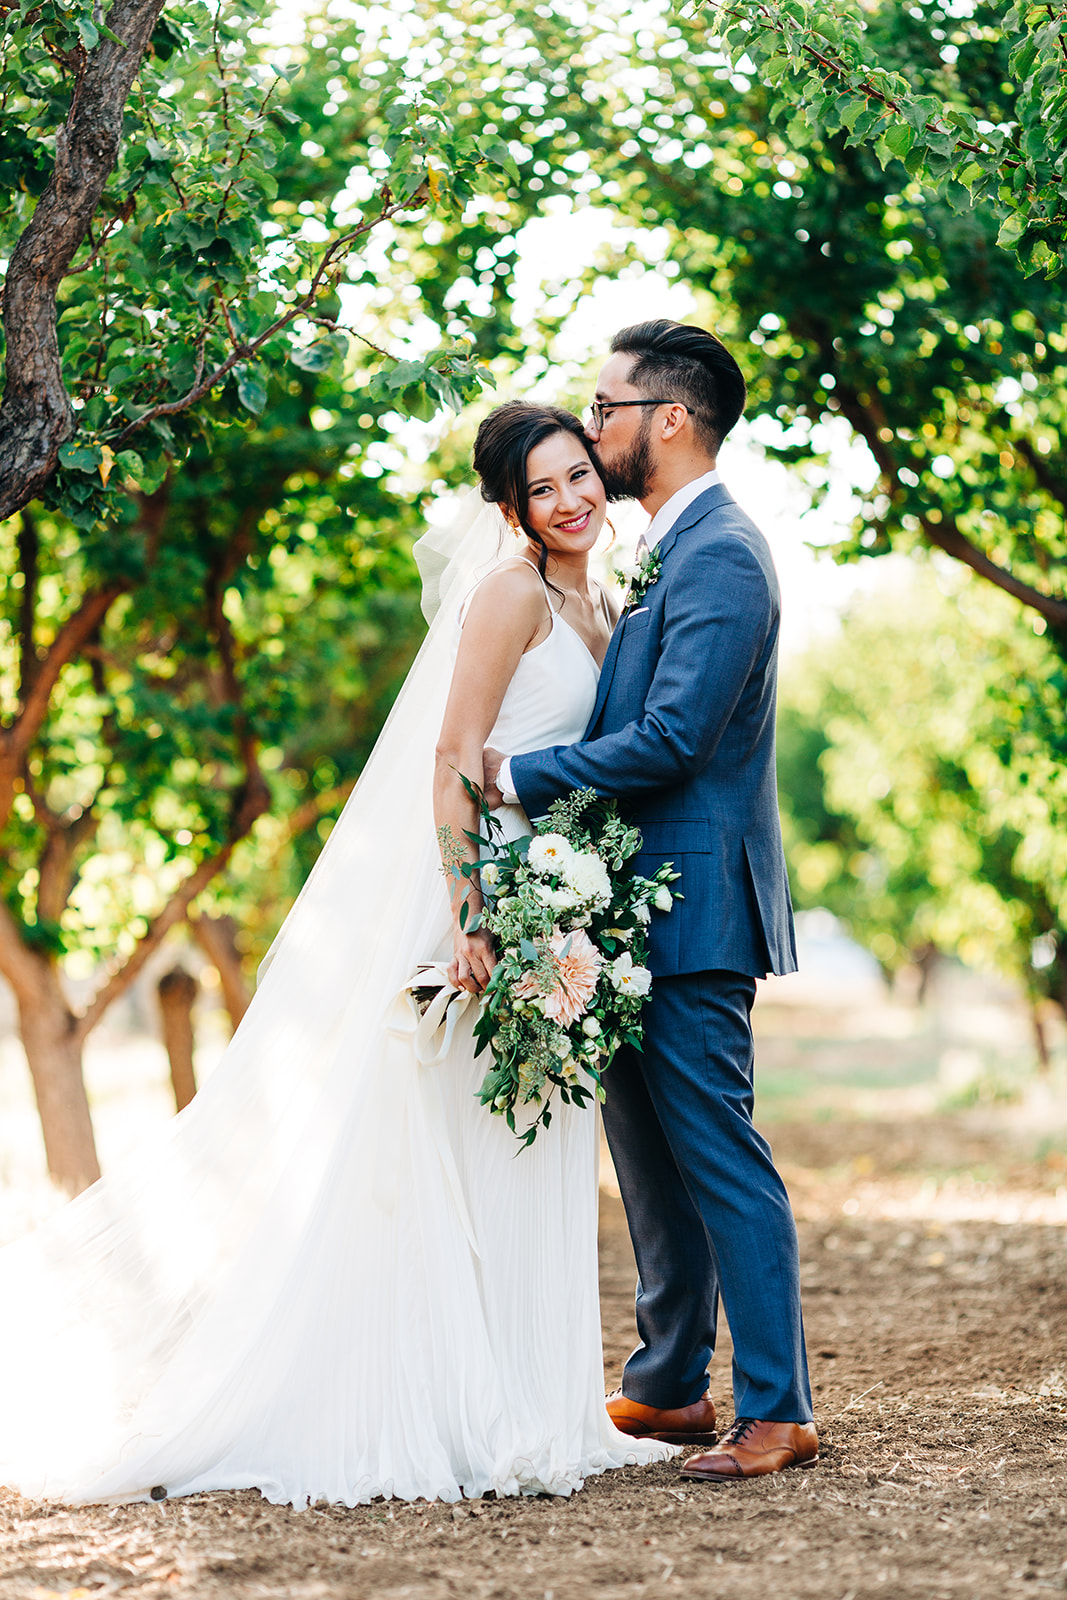 Los-Altos-History-Museum-Wedding_Orange-County-Wedding-Photographer_Clarisse-Rae-Photo-Video_78